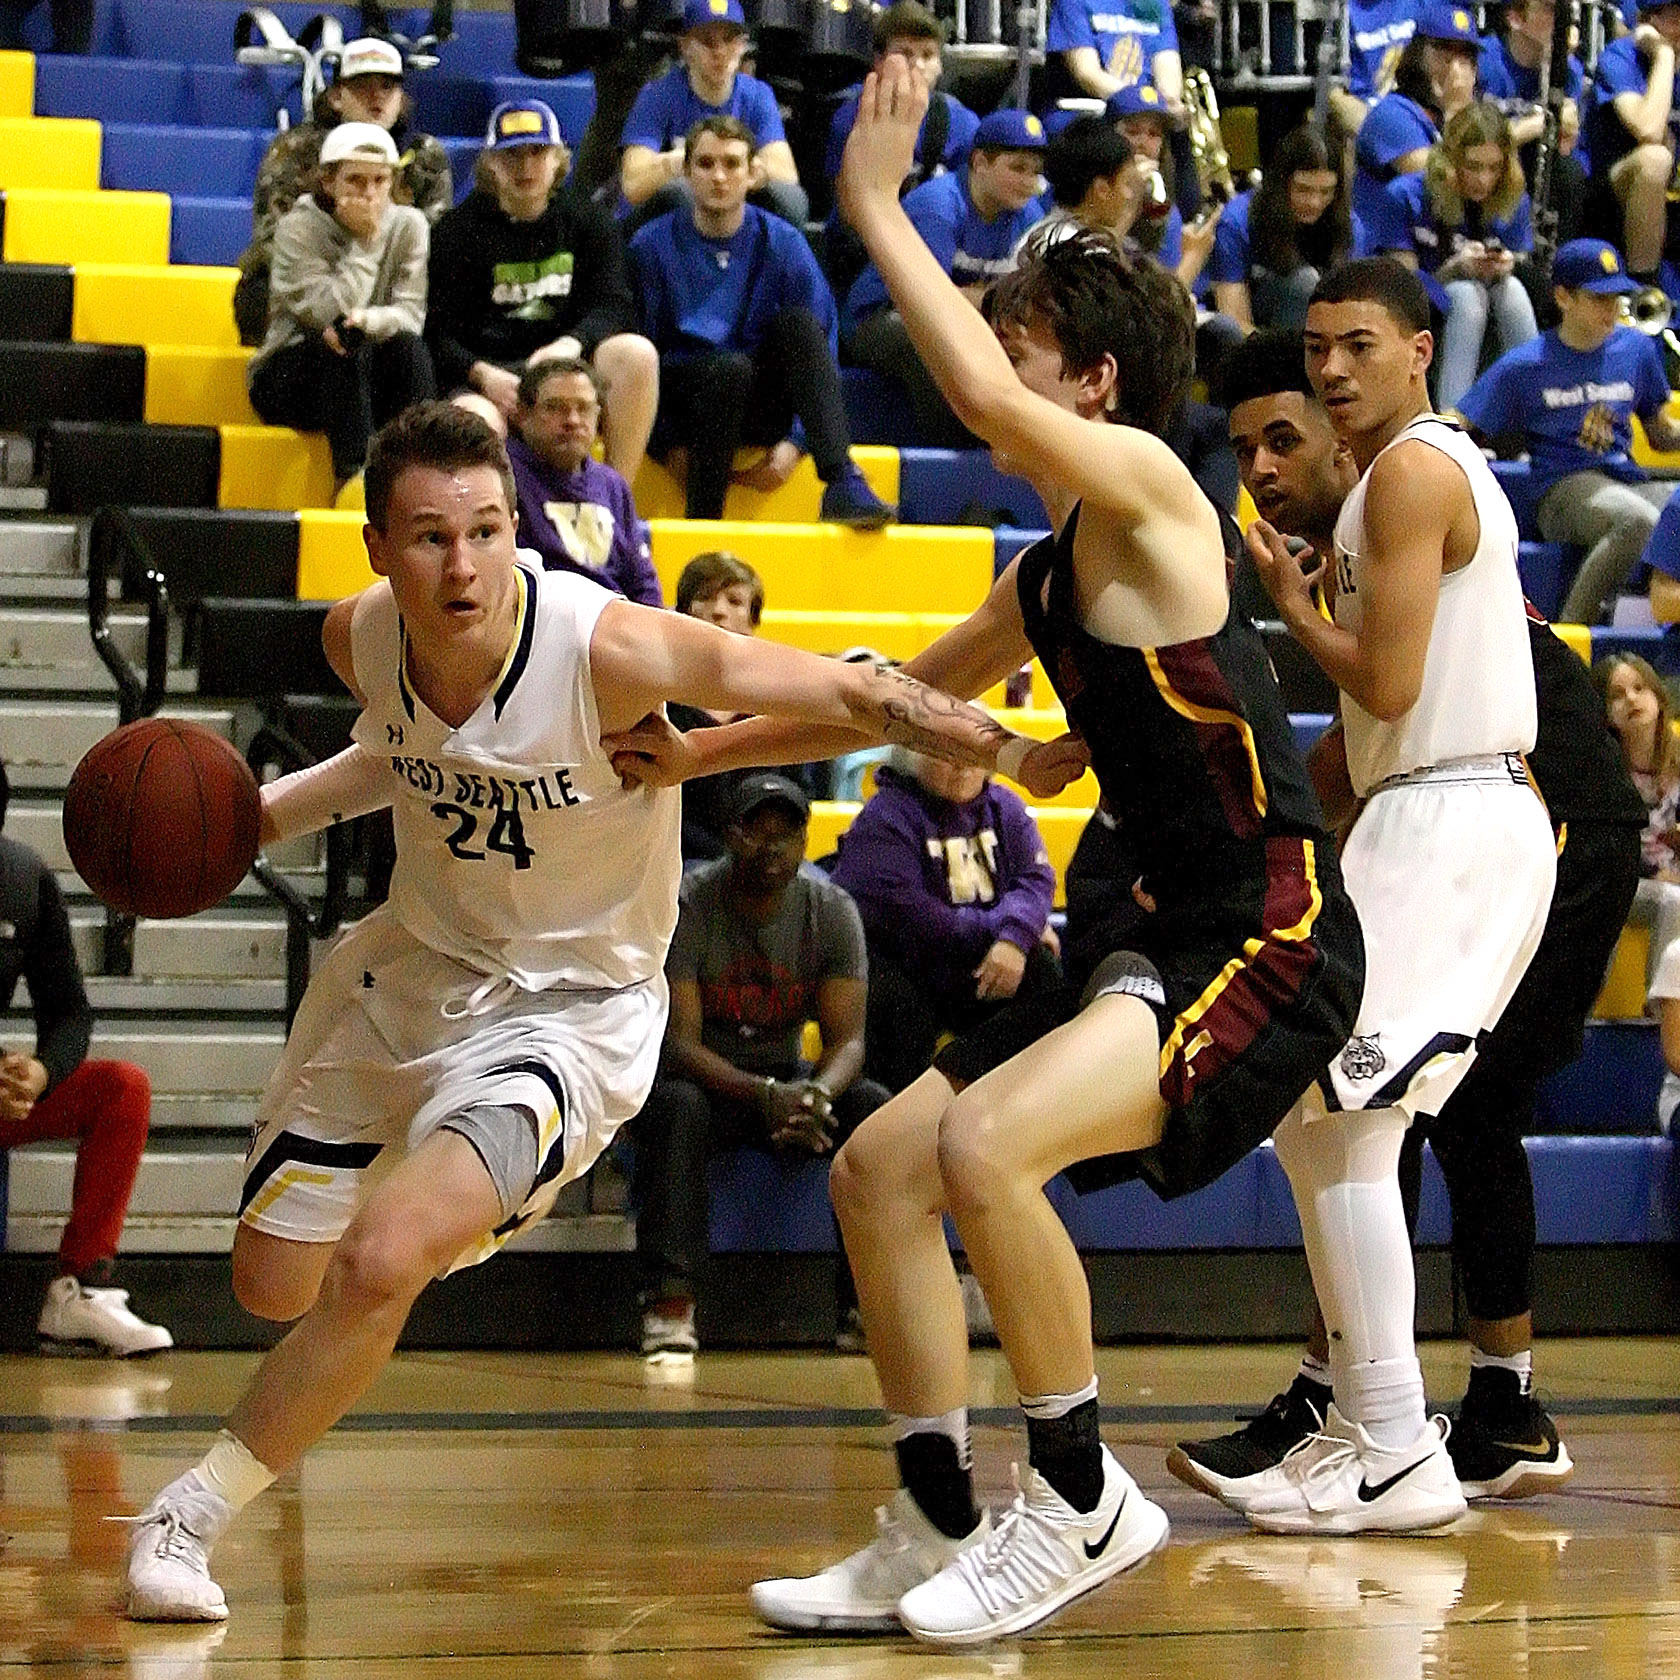 Simon Harris of West Seattle dribbles baseline against the defensive pressure of Lakeside's Robert Breyer.